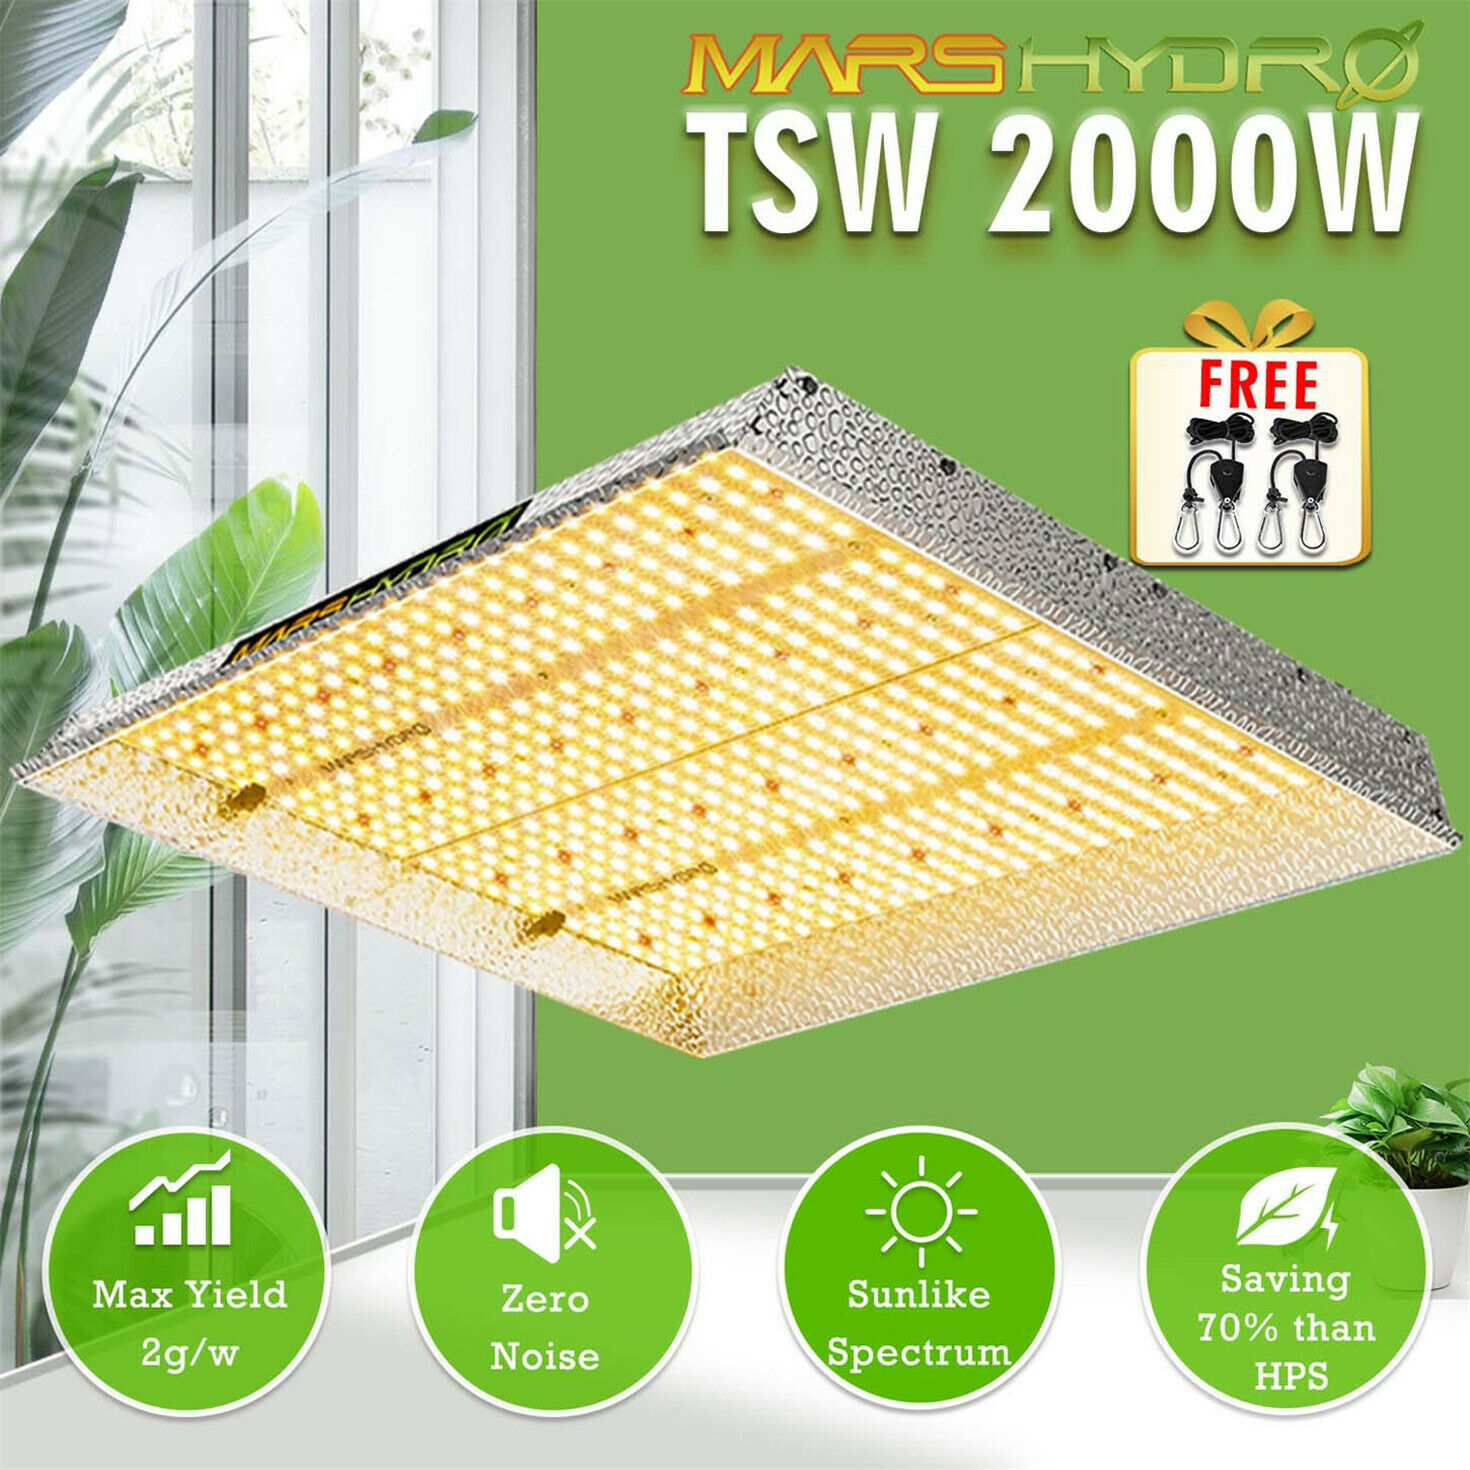 New! Mars Hydro TSW 2000W LED Grow Light Sunlike Full Spectrum For Veg And Bloom Hydroponics